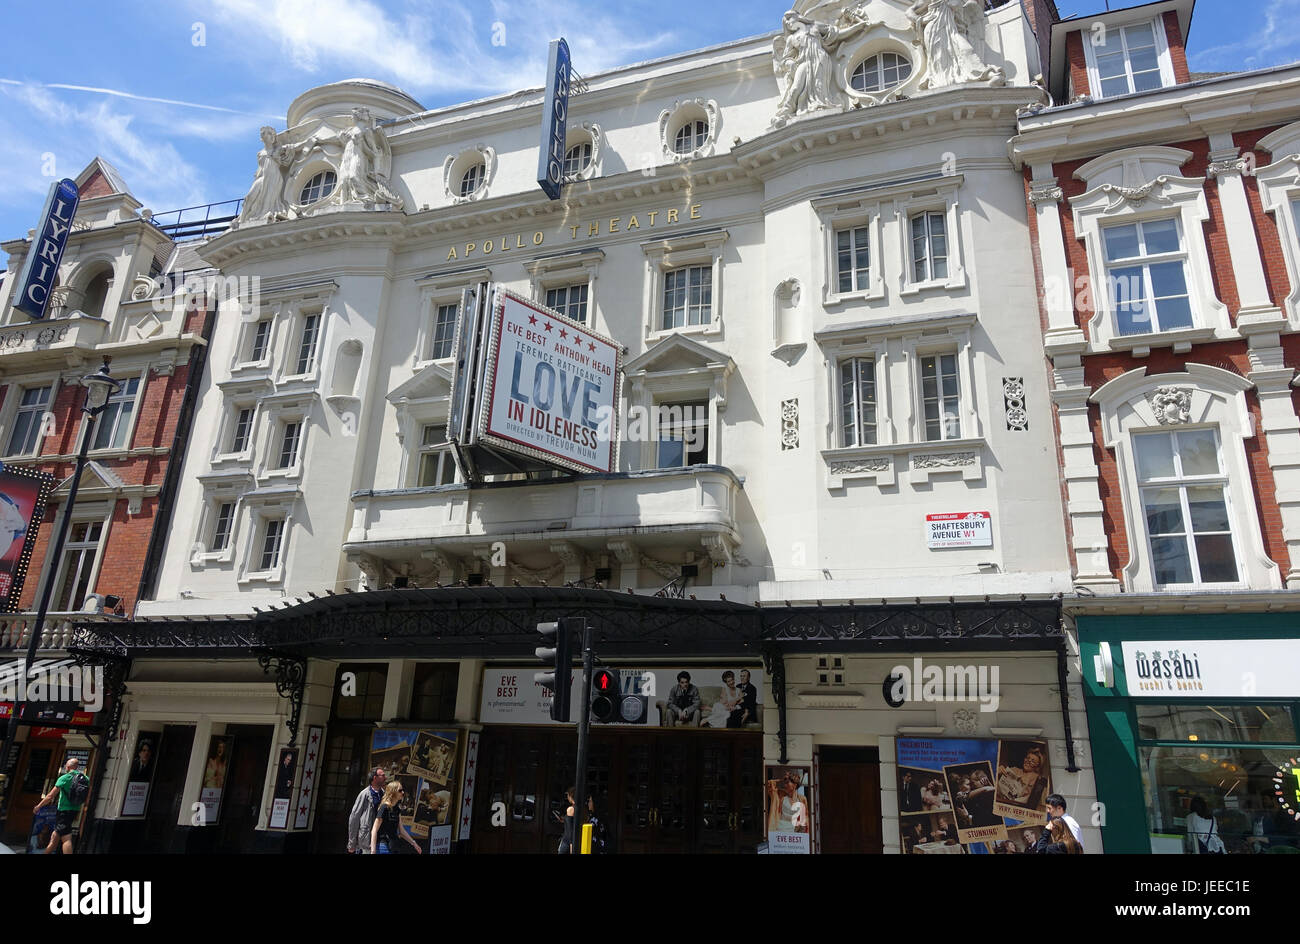 Front view of The Apollo Theatre on Shaftesbury Avenue in London - Stock Image